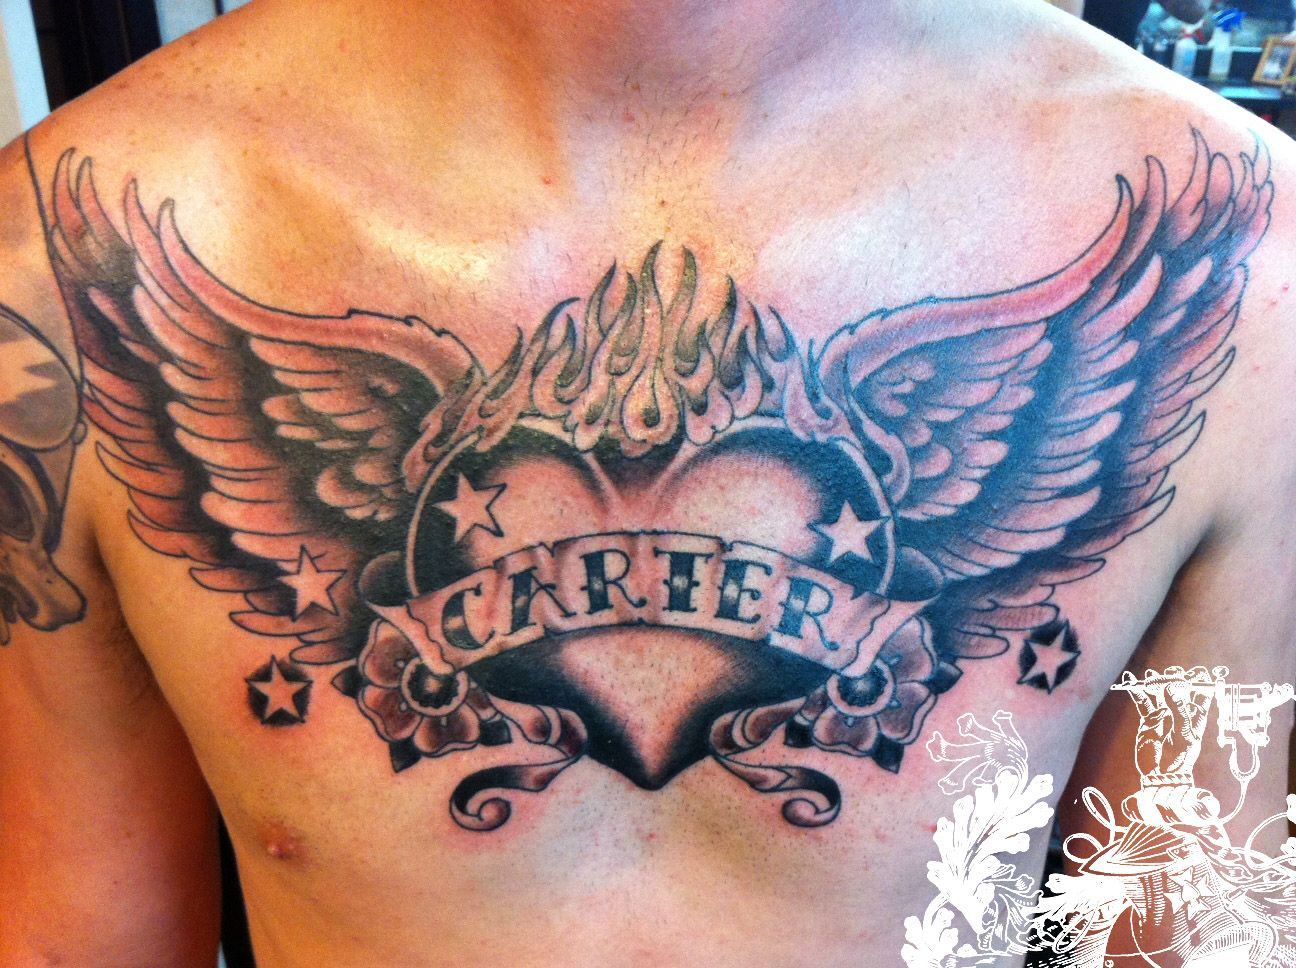 Open Heart Chest Tattoo Angel chest tattoo images